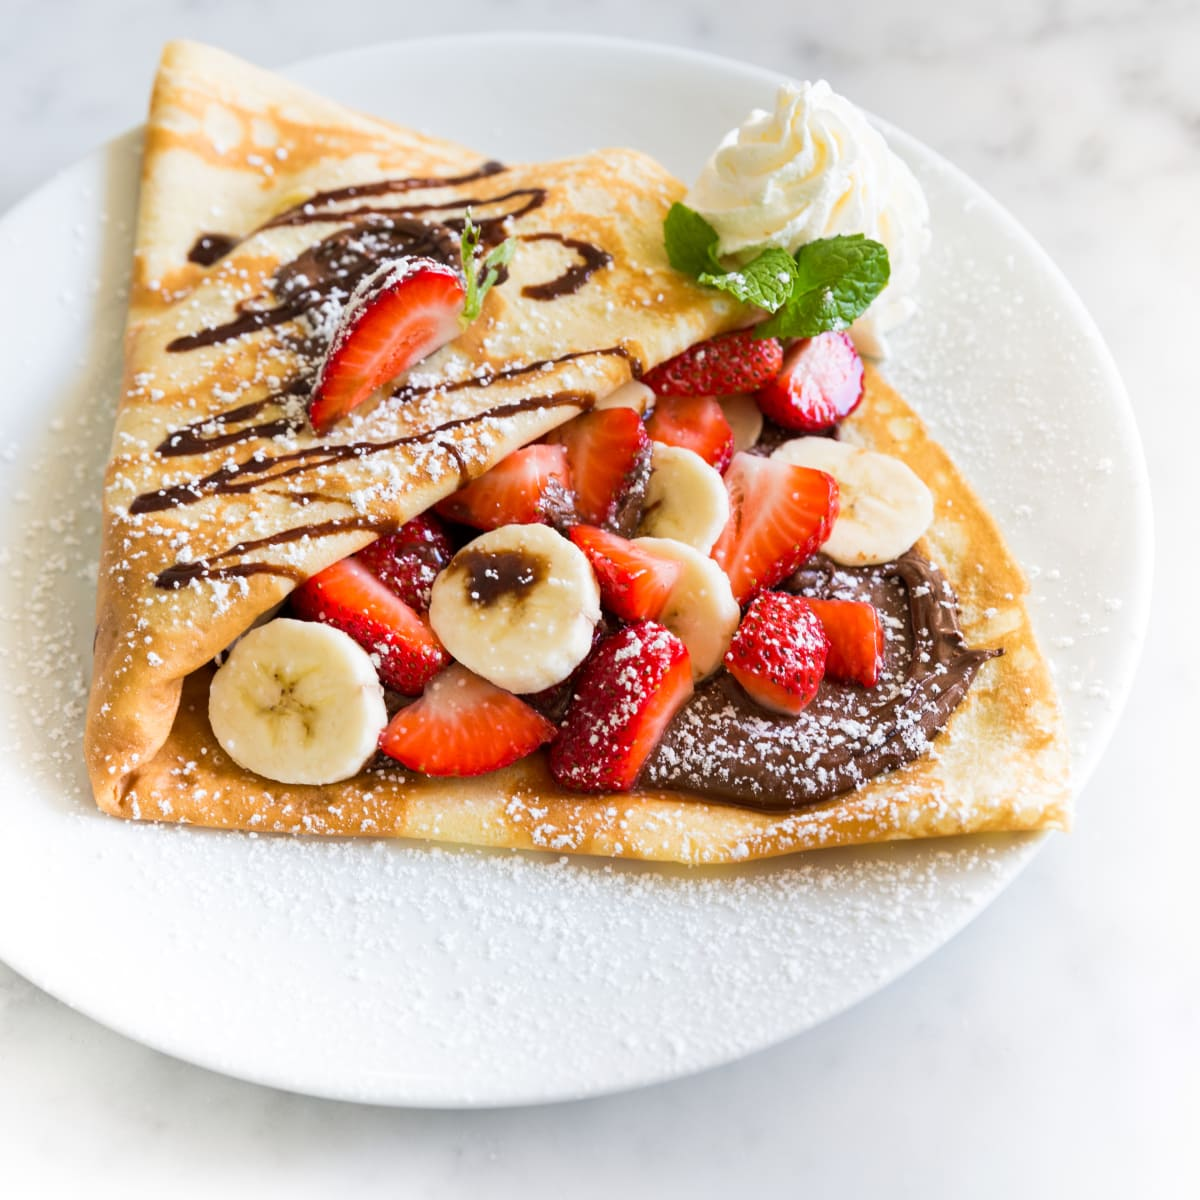 Sweet Paris Nutella crepe